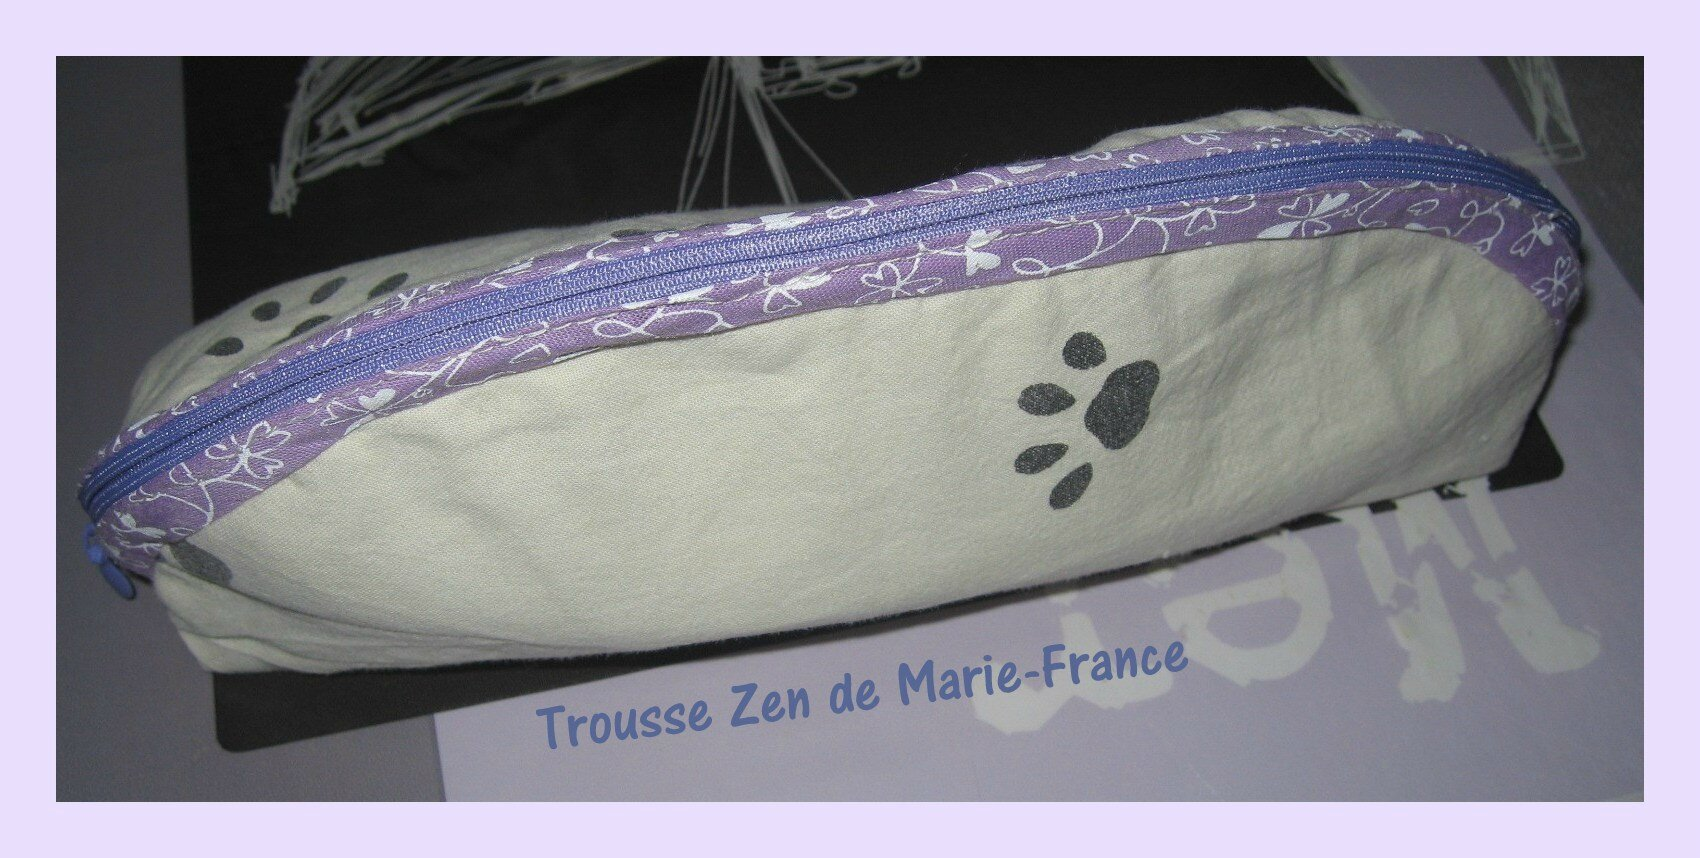 Trousse Zen 28 -Marie-France (2)